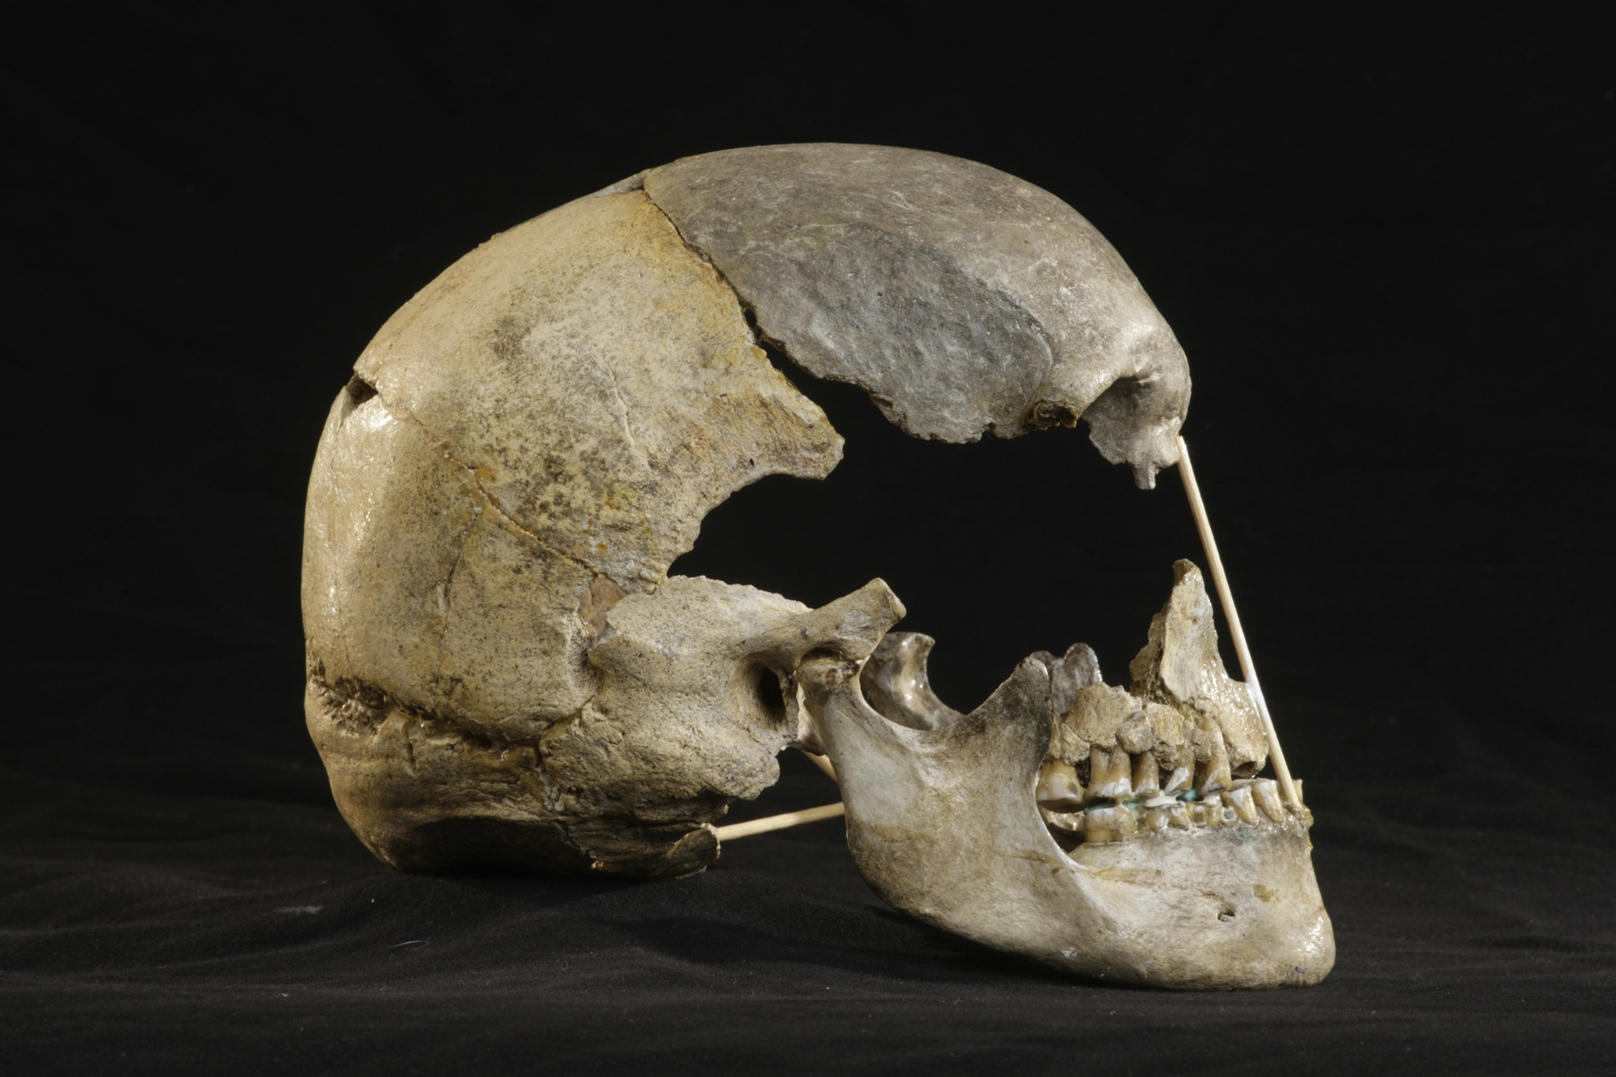 45,000-year-old Skull From Czech Cave May Contain Oldest Modern Human Genome